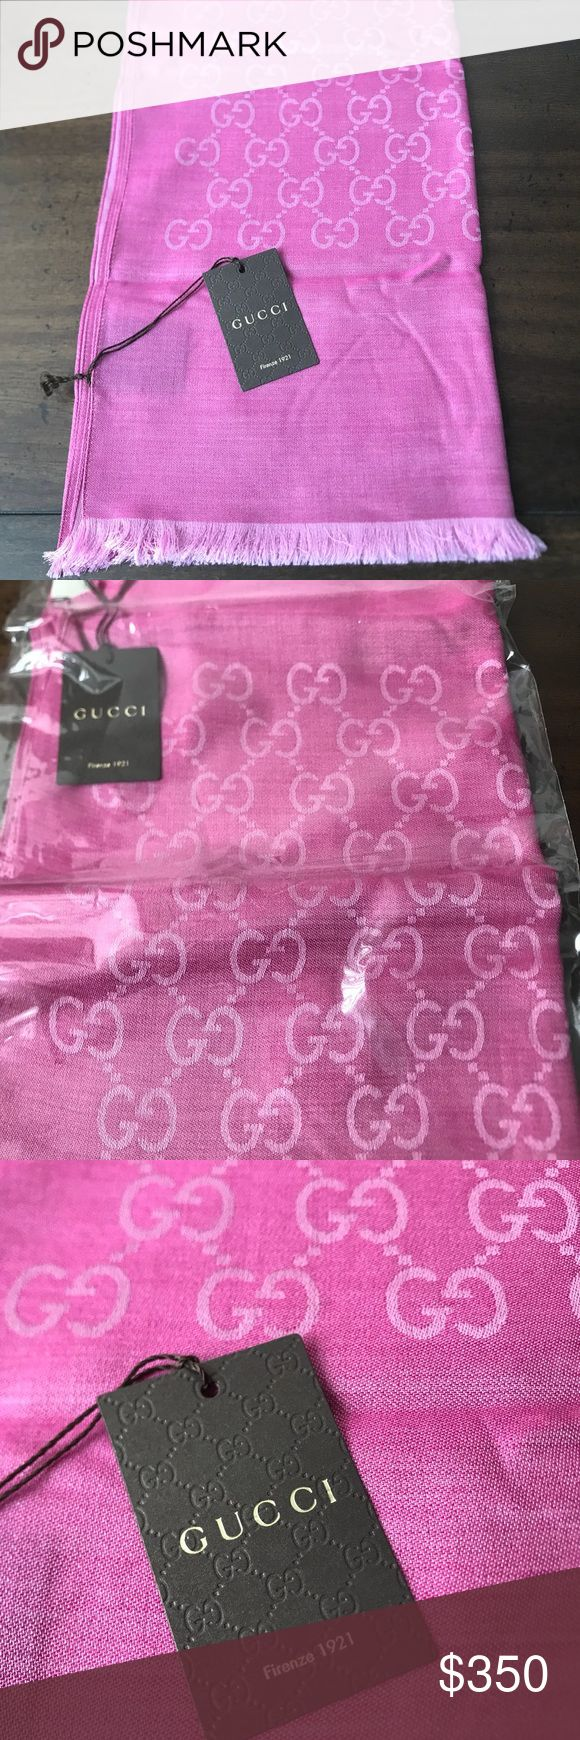 🔥LISTED TODAY🔥 Luxurious Gucci Scarf Gucci fans!! Feel free to drool over this beautiful scarf from Gucci (well, not literally)!! Isn't she a gem?! Harder to find shade of pink.  Made in Italy, 70% wool, 30% silk.  Great for year-round use.  Brand new, took out of sealed bag for pictures.  Smoke-free/pet-free.  45x 180 cm. Accessories Scarves & Wraps